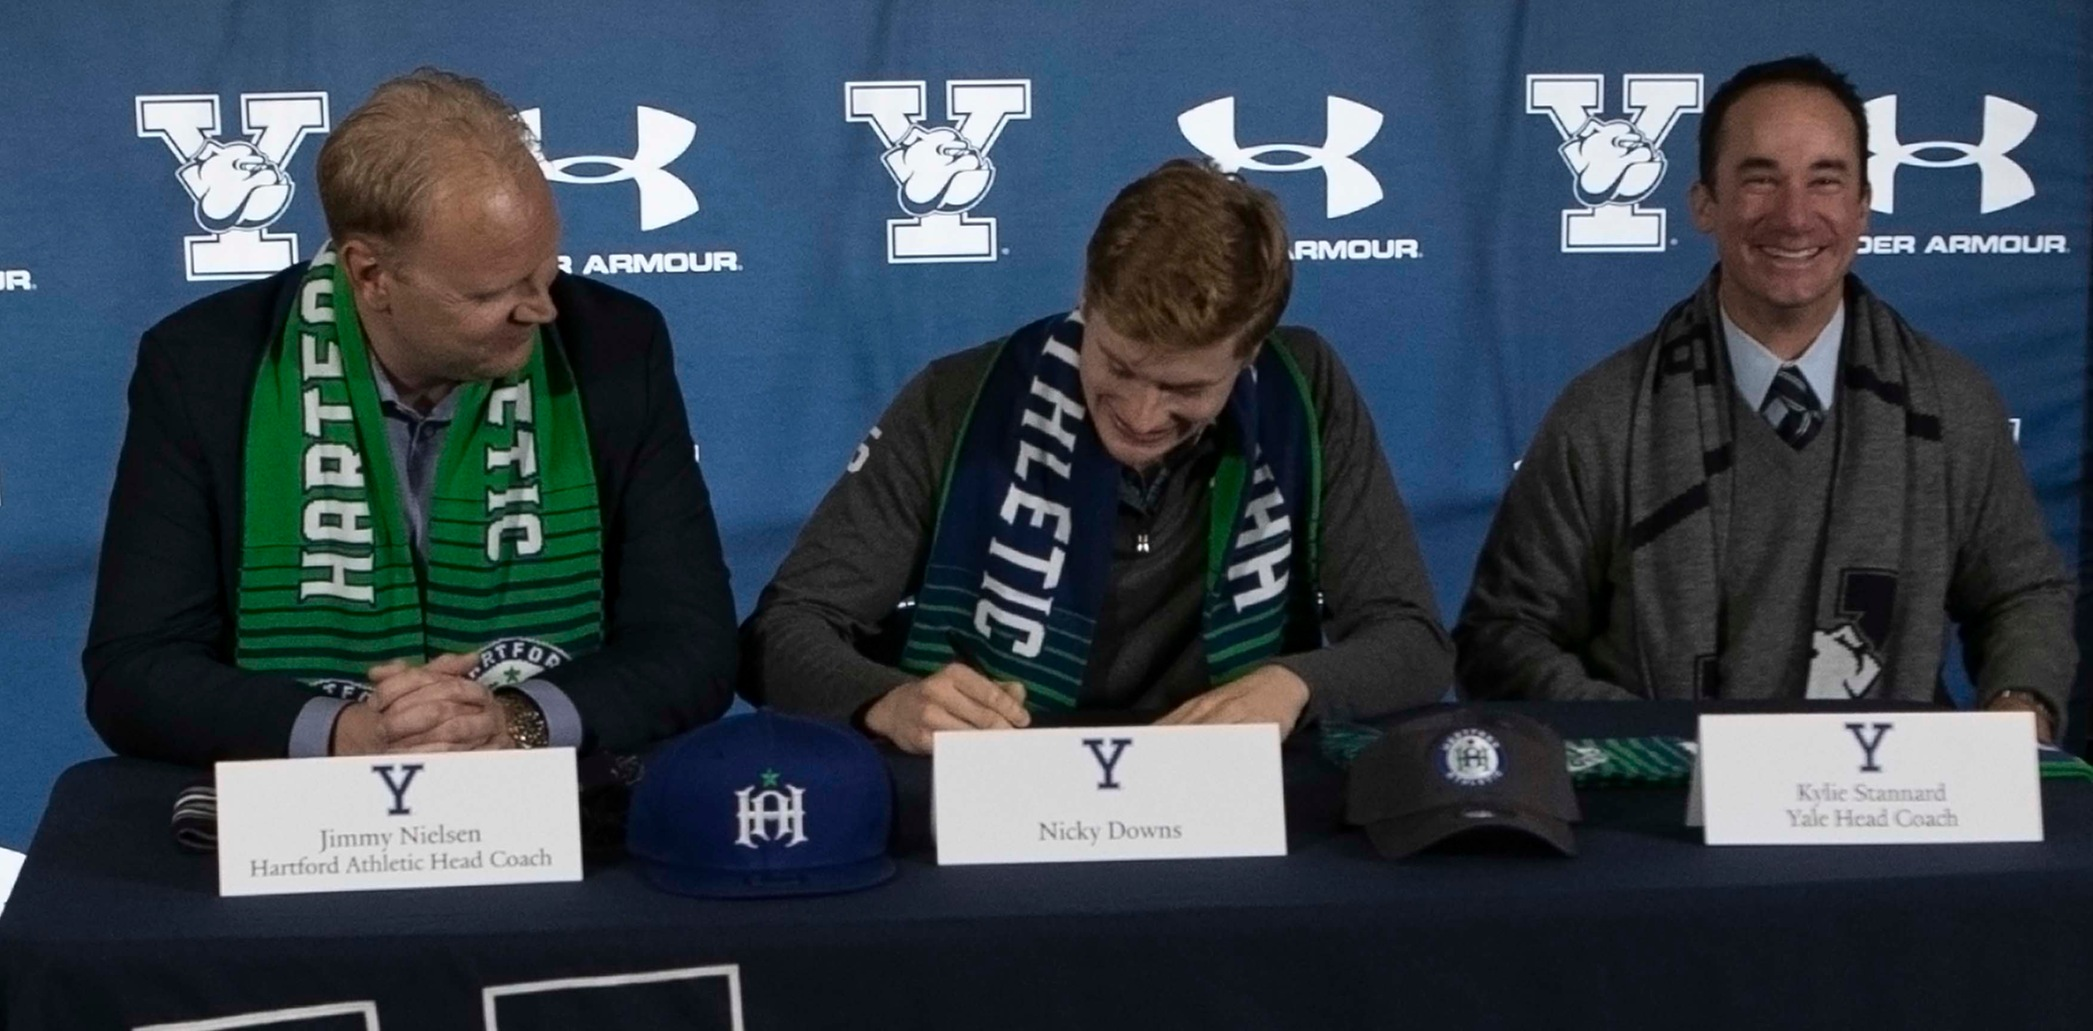 Nicky Downs, center, with Hartford Athletic Head Coach Jimmy Nielsen and Yale Head Coach Kylie Stannard (Steve Musco photo)